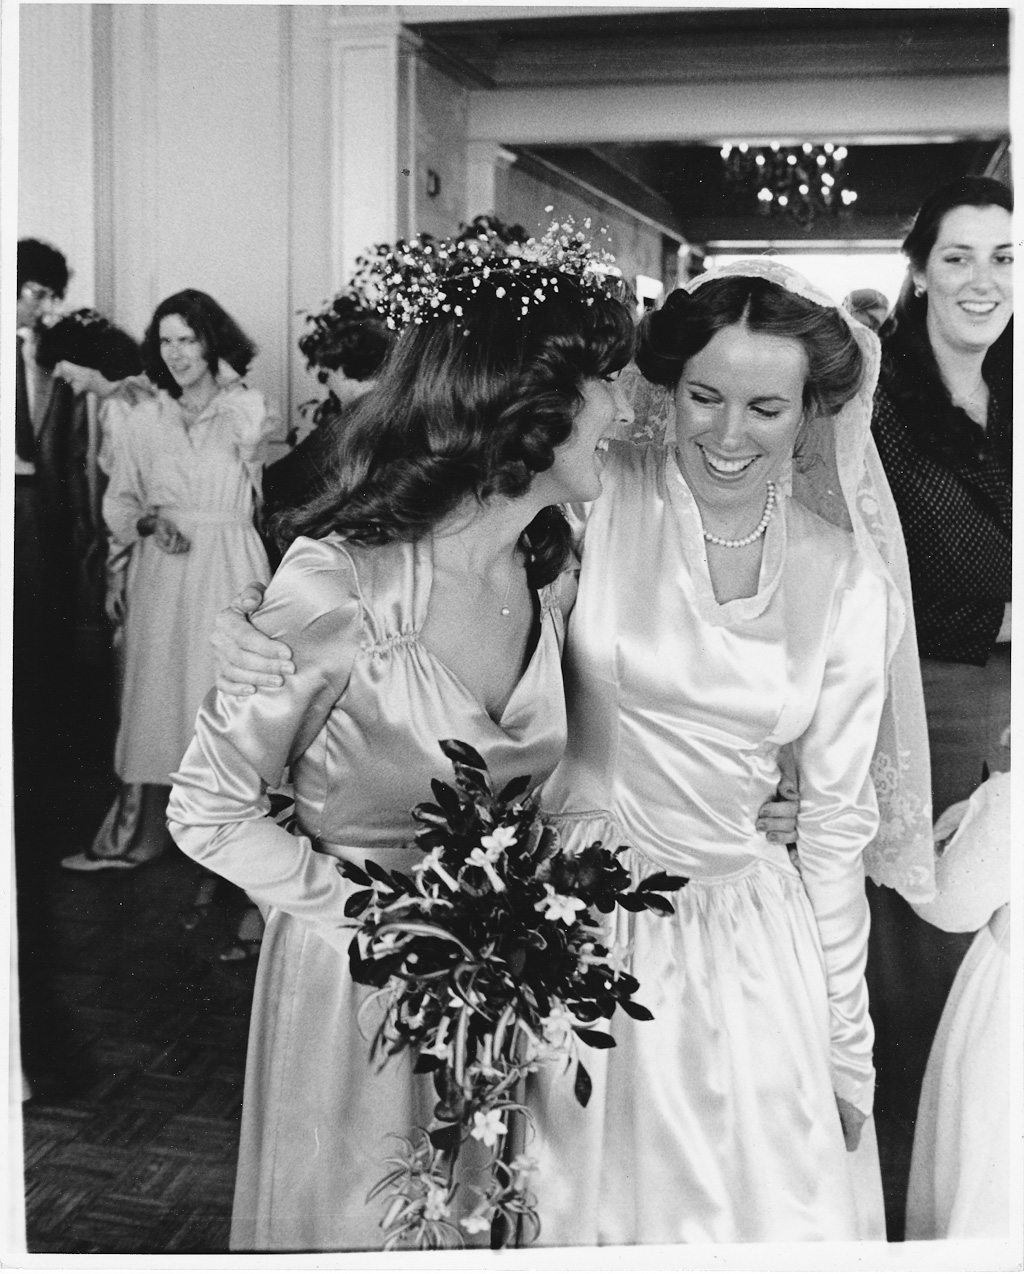 1970s Wedding Photograph of Bride and Bridesmaid at the Saint Louis Cathedral